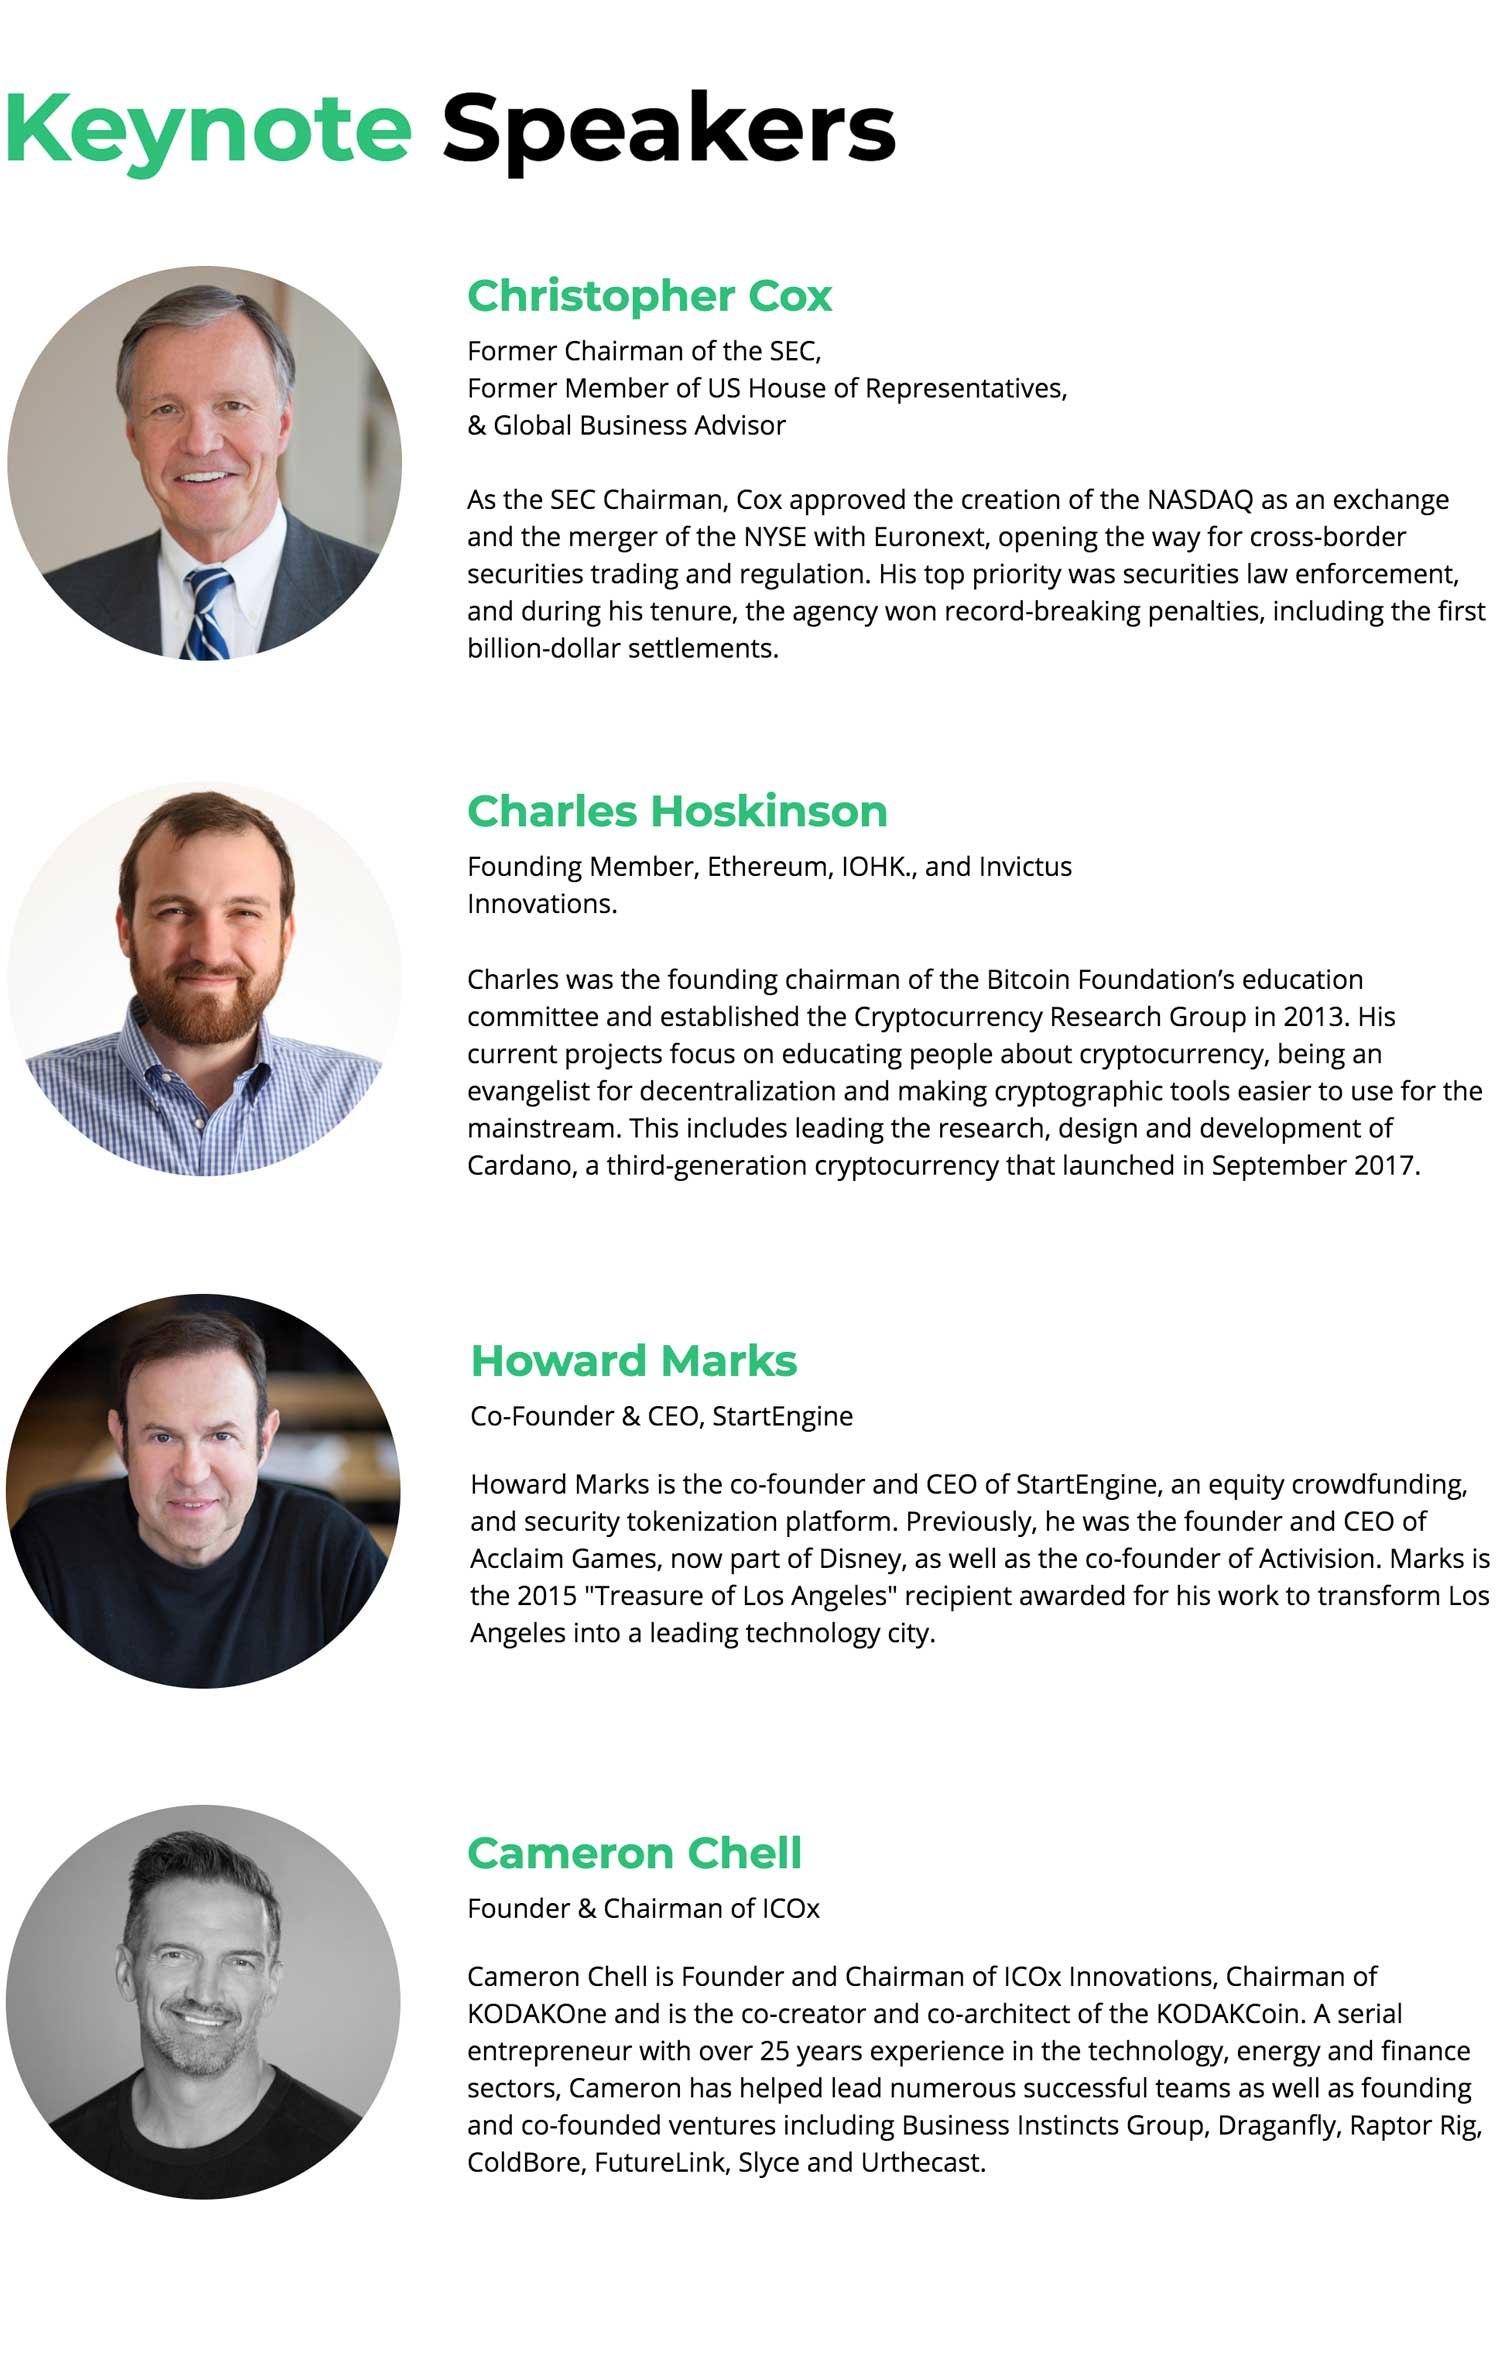 Hear from industry professionals why the movement towards tokenized securities and alternative assets on the blockchain has the potential to revolutionize the world's financial markets.  Don't miss keynote speaker Christopher Cox, former SEC Chairman & Congressman.	 As the SEC Chairman, Christopher Cox approved the creation of the NASDAQ as an exchange and the merger of the NYSE with Euronext, opening the way for cross-border securities trading and regulation. His top priority was securities law enforcement, and during his tenure, the agency won record-breaking penalties, including the first billion-dollar settlements.		After Christopher's keynote, the best and brightest minds in tokenization will discuss tokenization, regulation, and finance. Hear from the thought leaders at the intersection of regulation and disruption that are tokenizing assets from securities to real estate and ushering in a new age of securities markets.